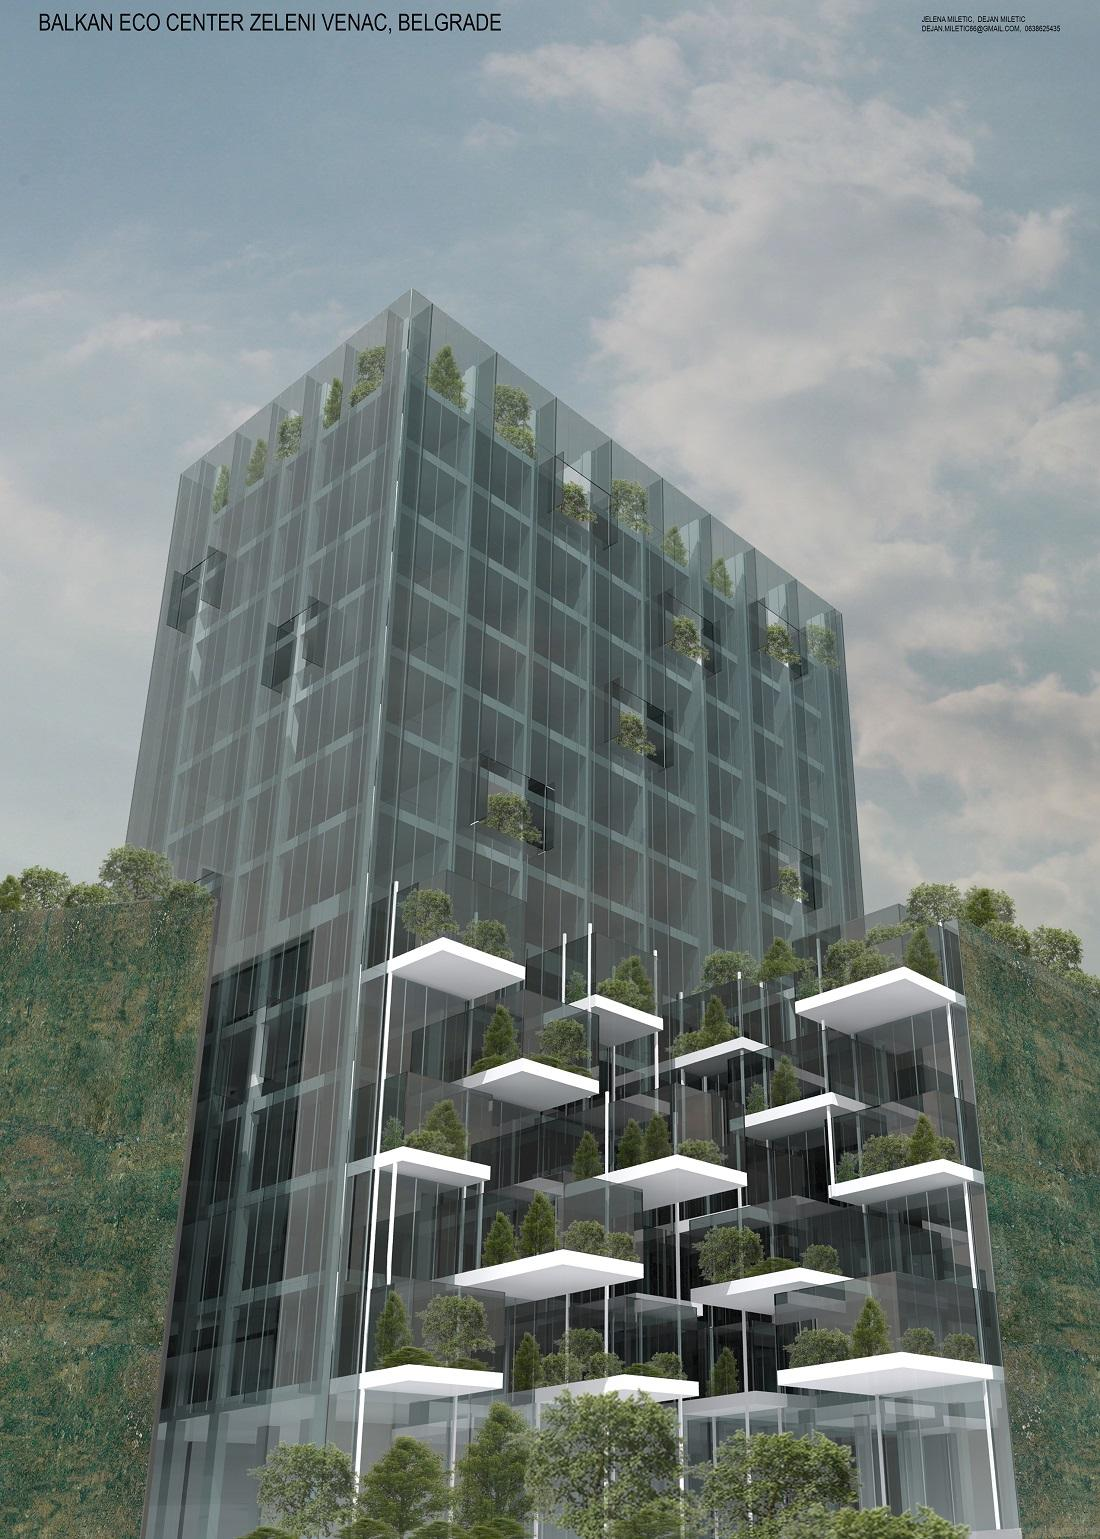 10th-finalist-architectural-competition.jpg